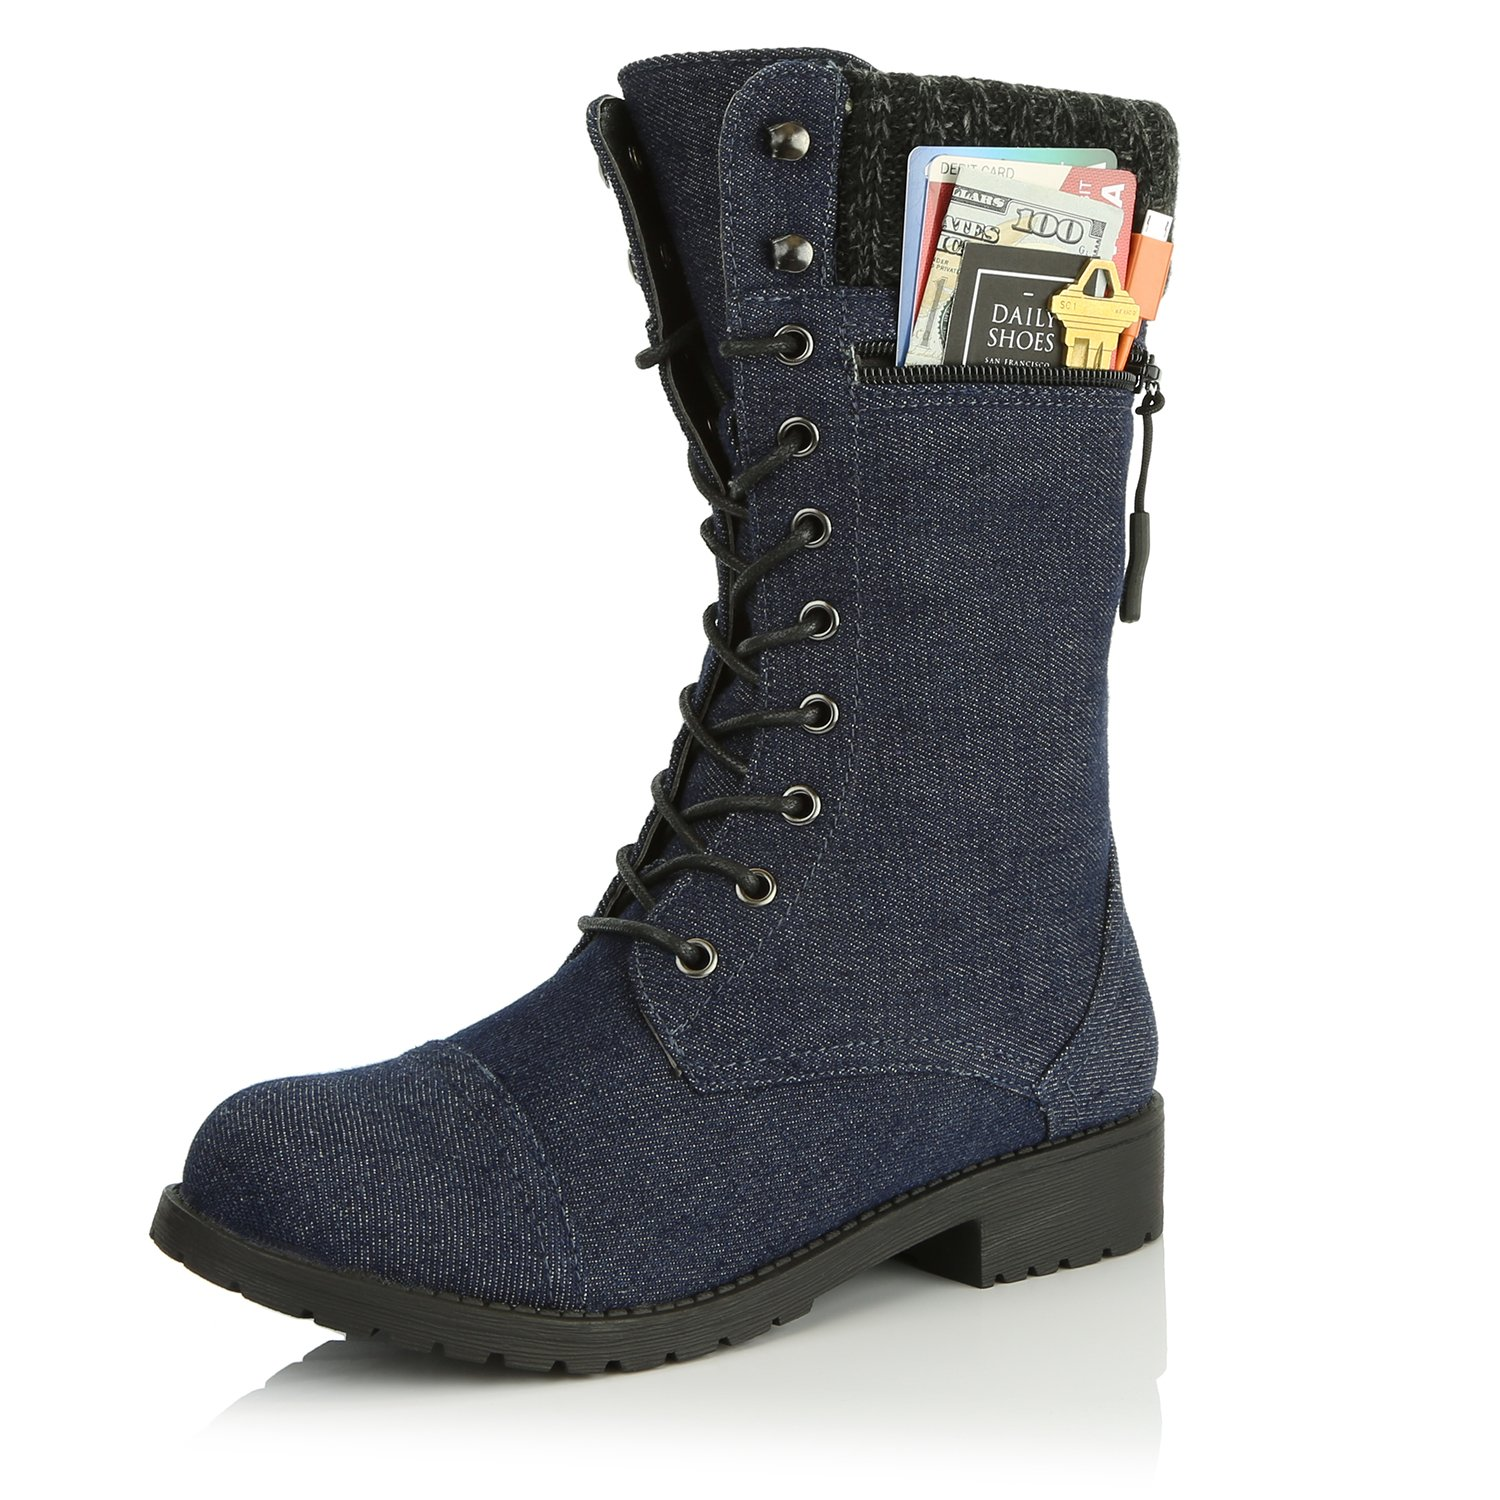 DailyShoes Women's Combat Style up Ankle Bootie Quilted Military Knit Credit Card Knife Money Wallet Pocket Boots B0155NA0D8 7.5 B(M) US|Blue Denim